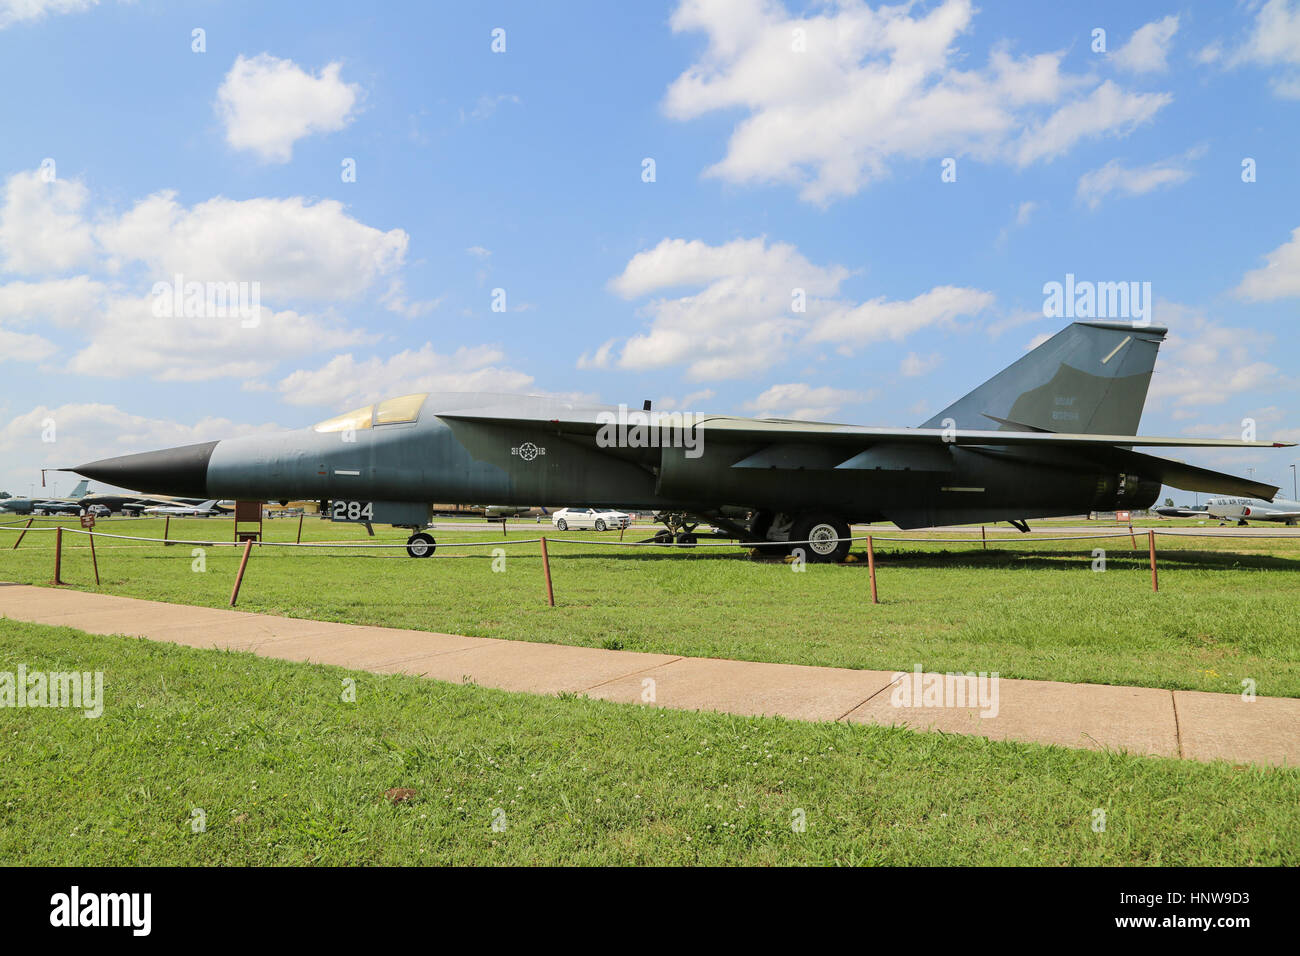 Un General Dynamics F-111A sul display in Barksdale Global Power Museo, su Barksdale AFB, Louisiana Immagini Stock